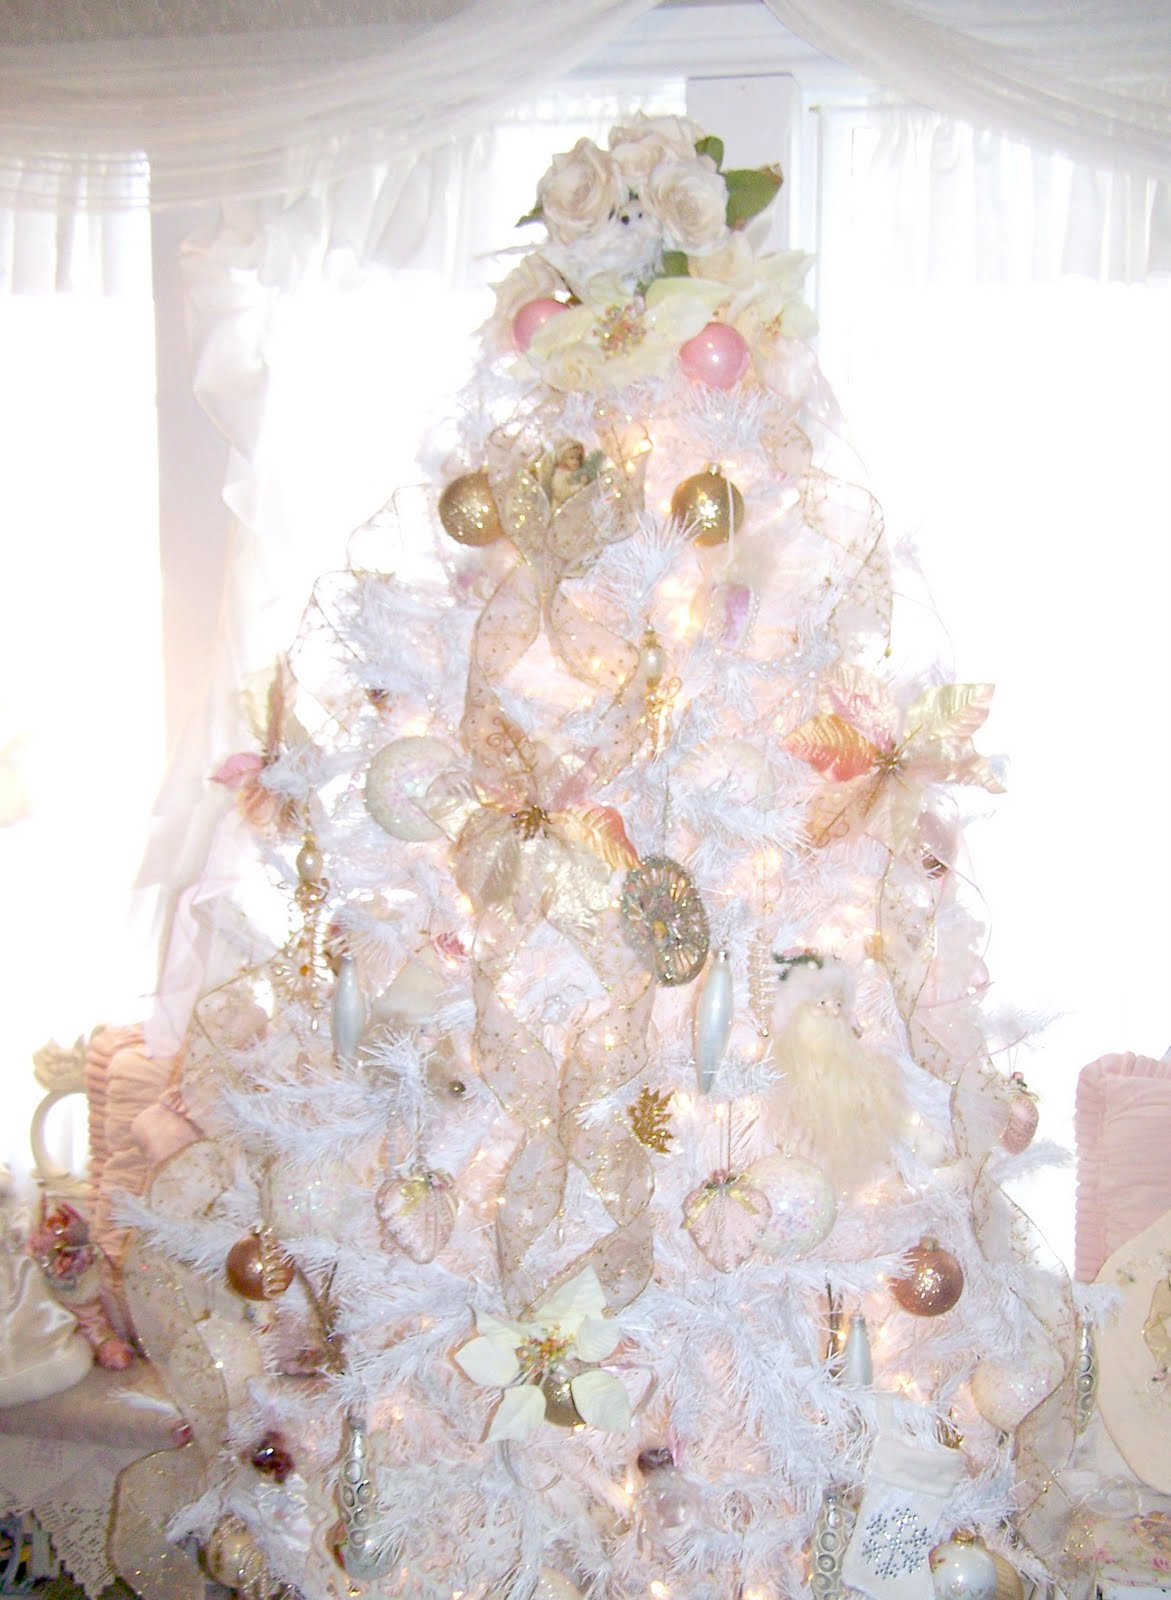 86 White Christmas Tree With Gold Decorations Wright Landscaping